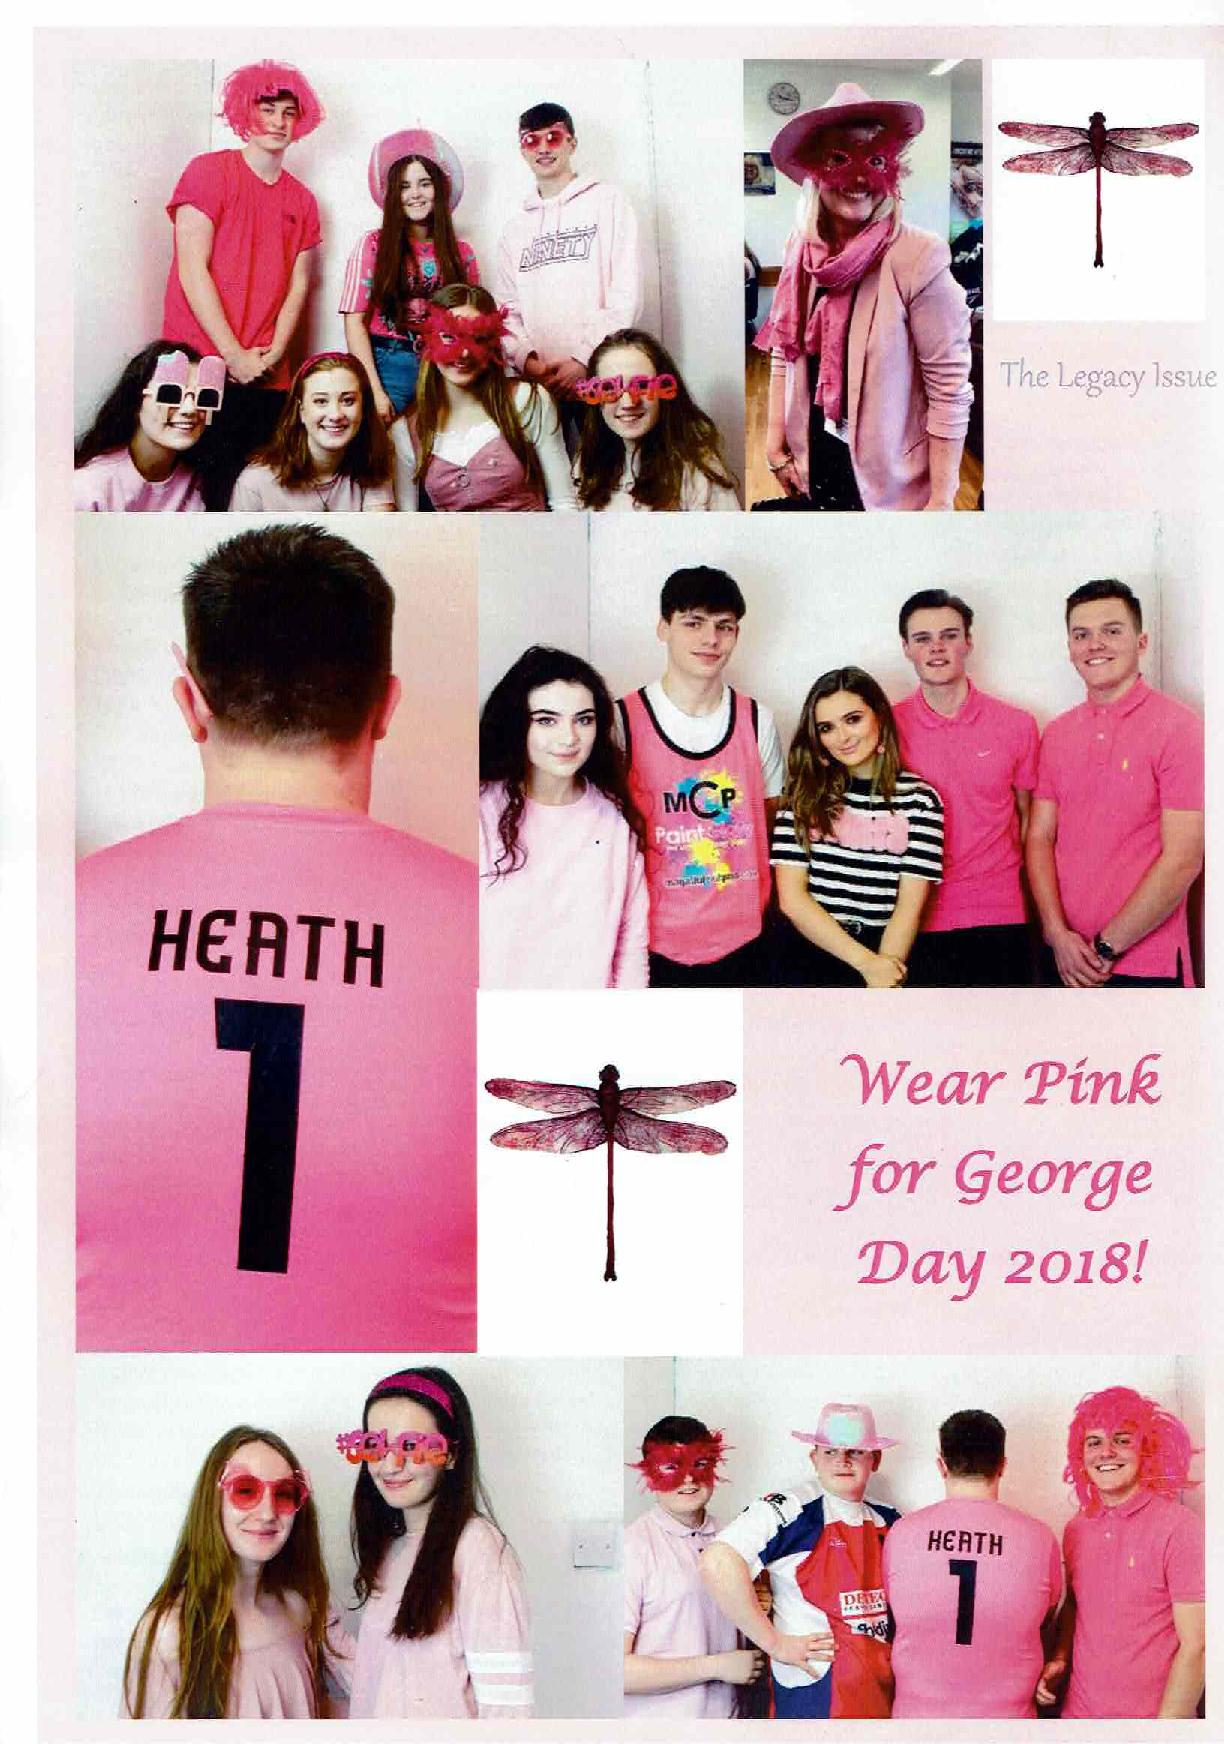 Wear Pink for George Day 2018